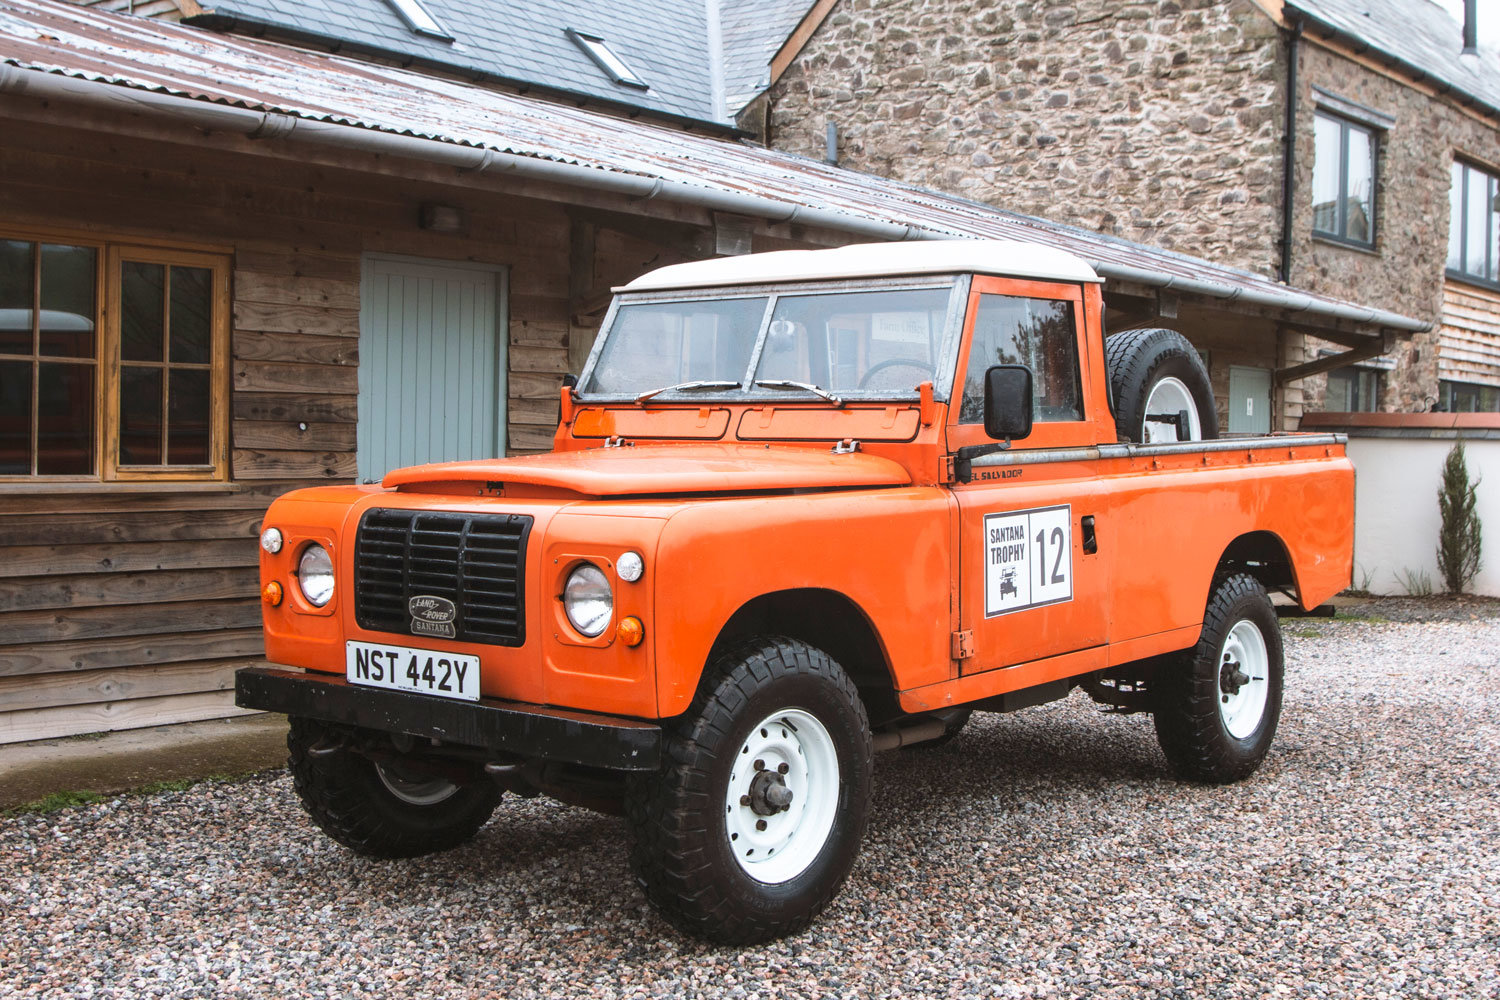 1982 Land Rover Santana 109 6 Cyl Diesel LHD For Sale (picture 2 of 6)